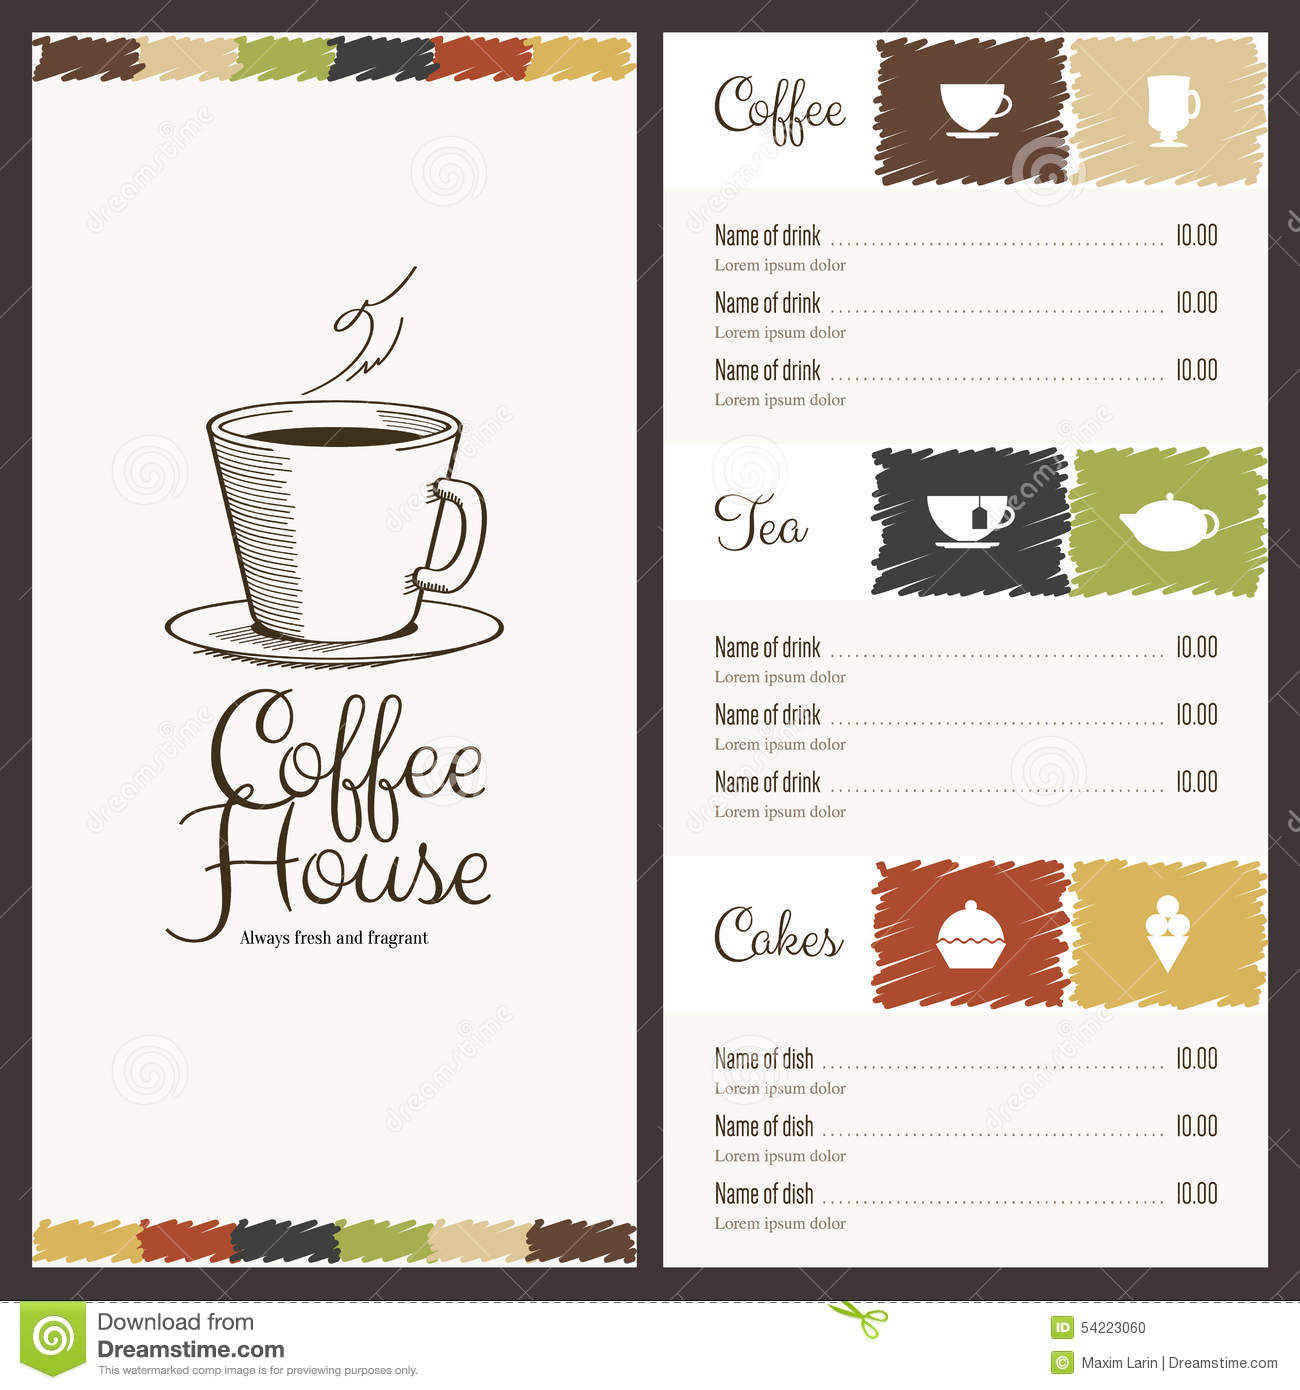 Menu For Restaurant Cafe Bar Coffee House Stock Vector Illustration Of House Drink 54223060